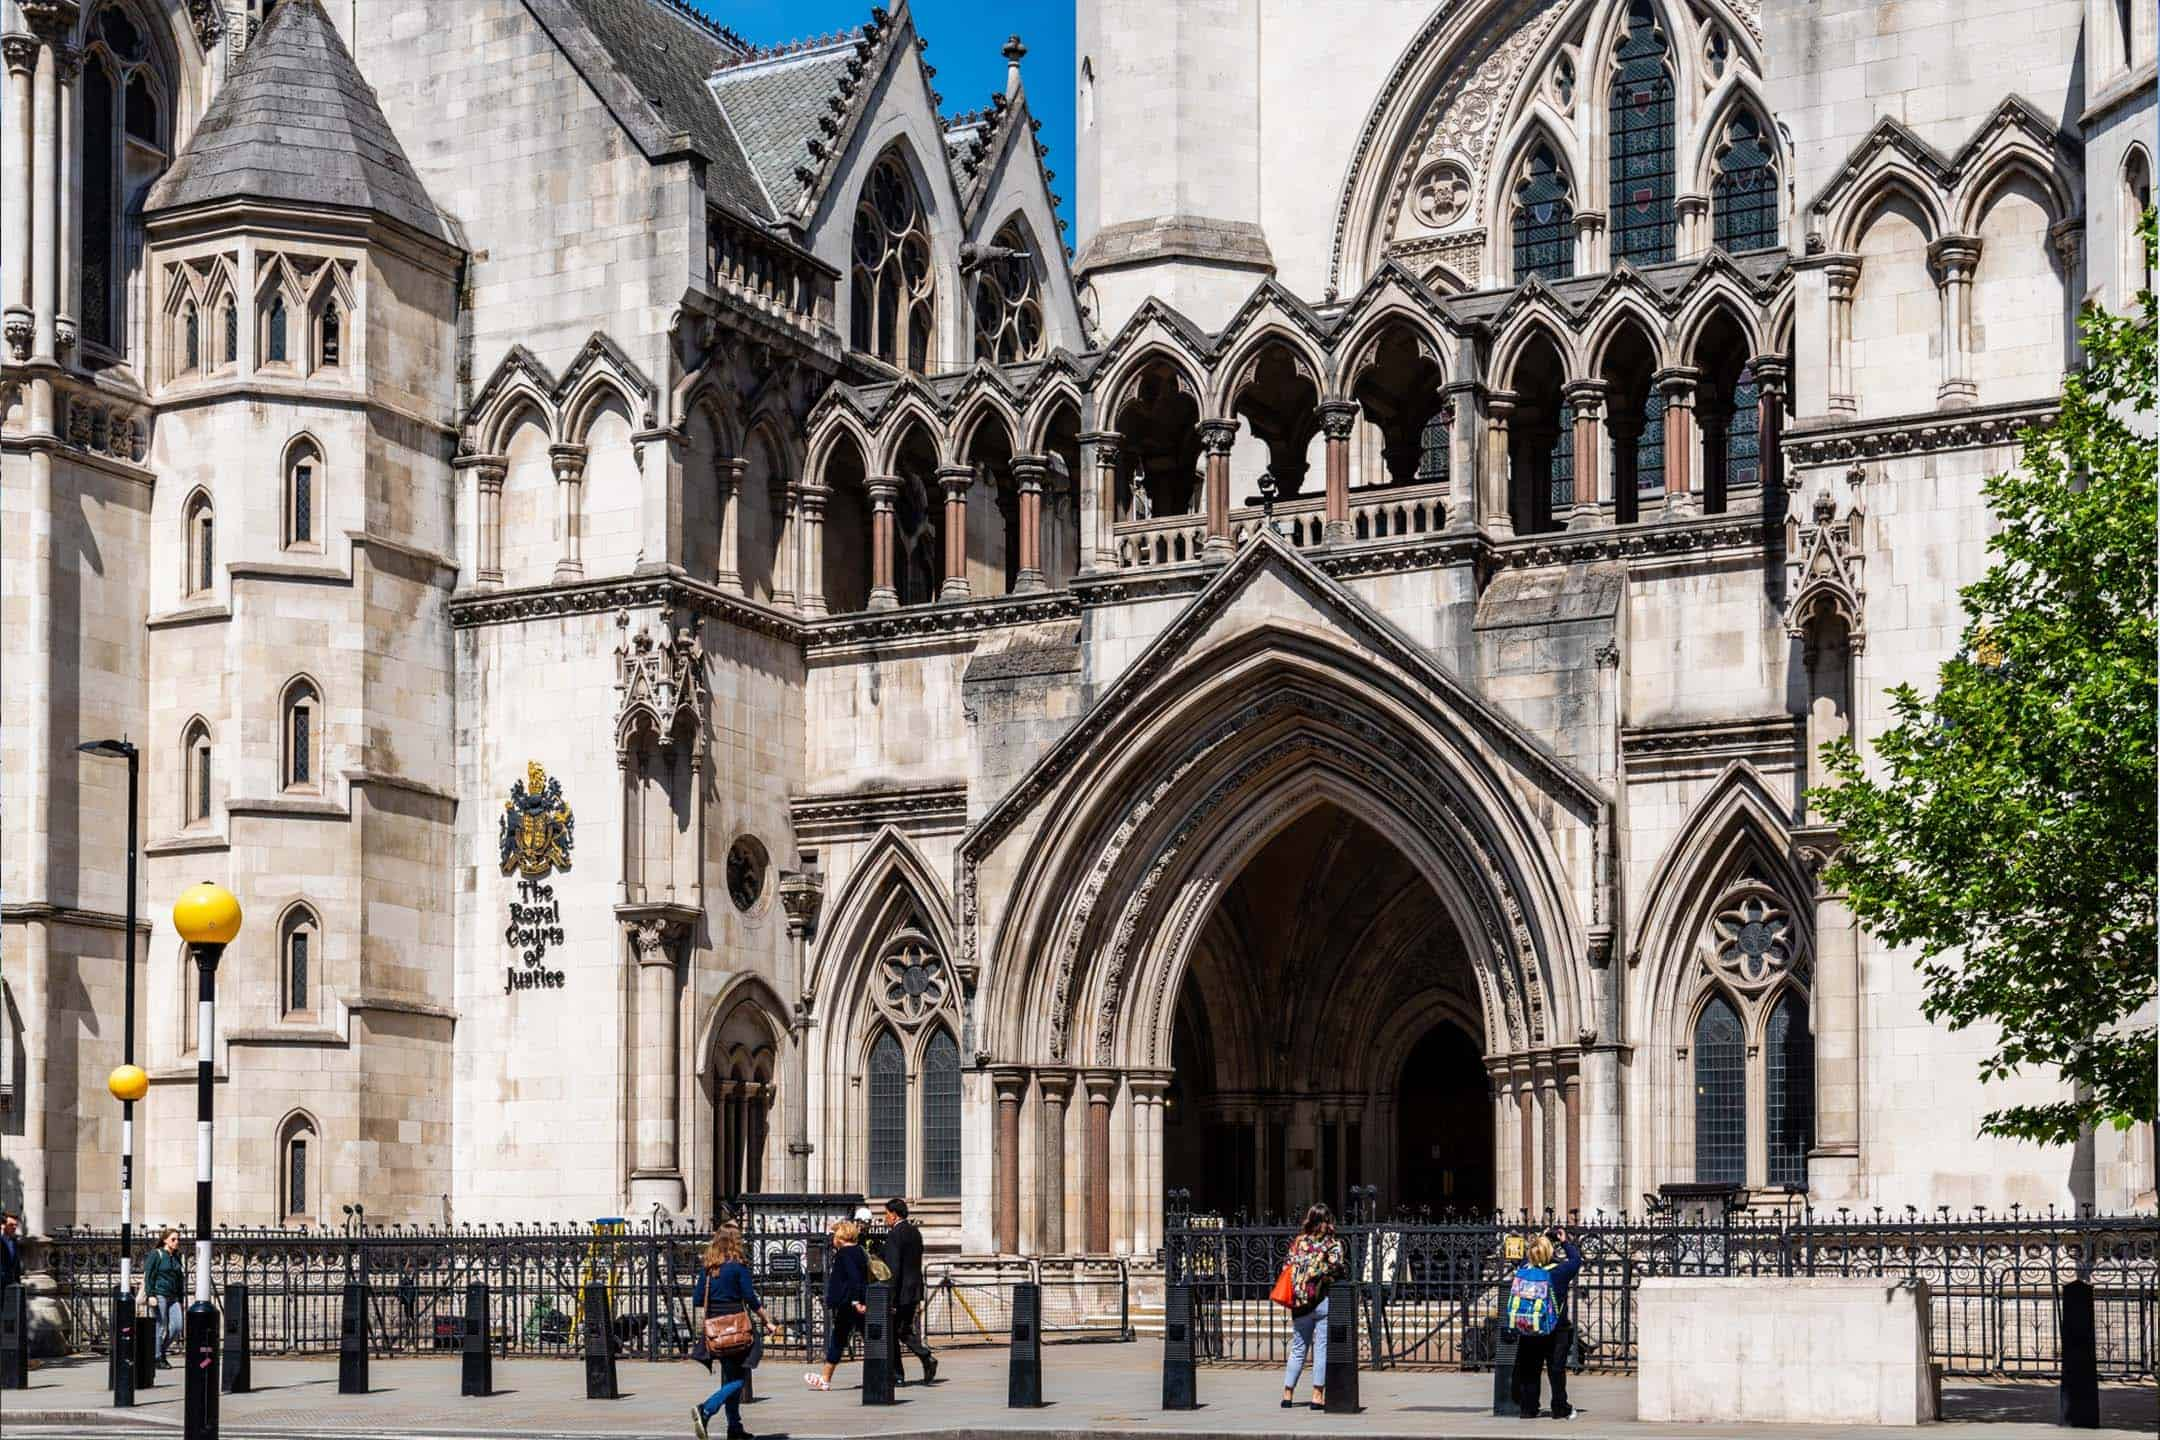 extradition order appeal